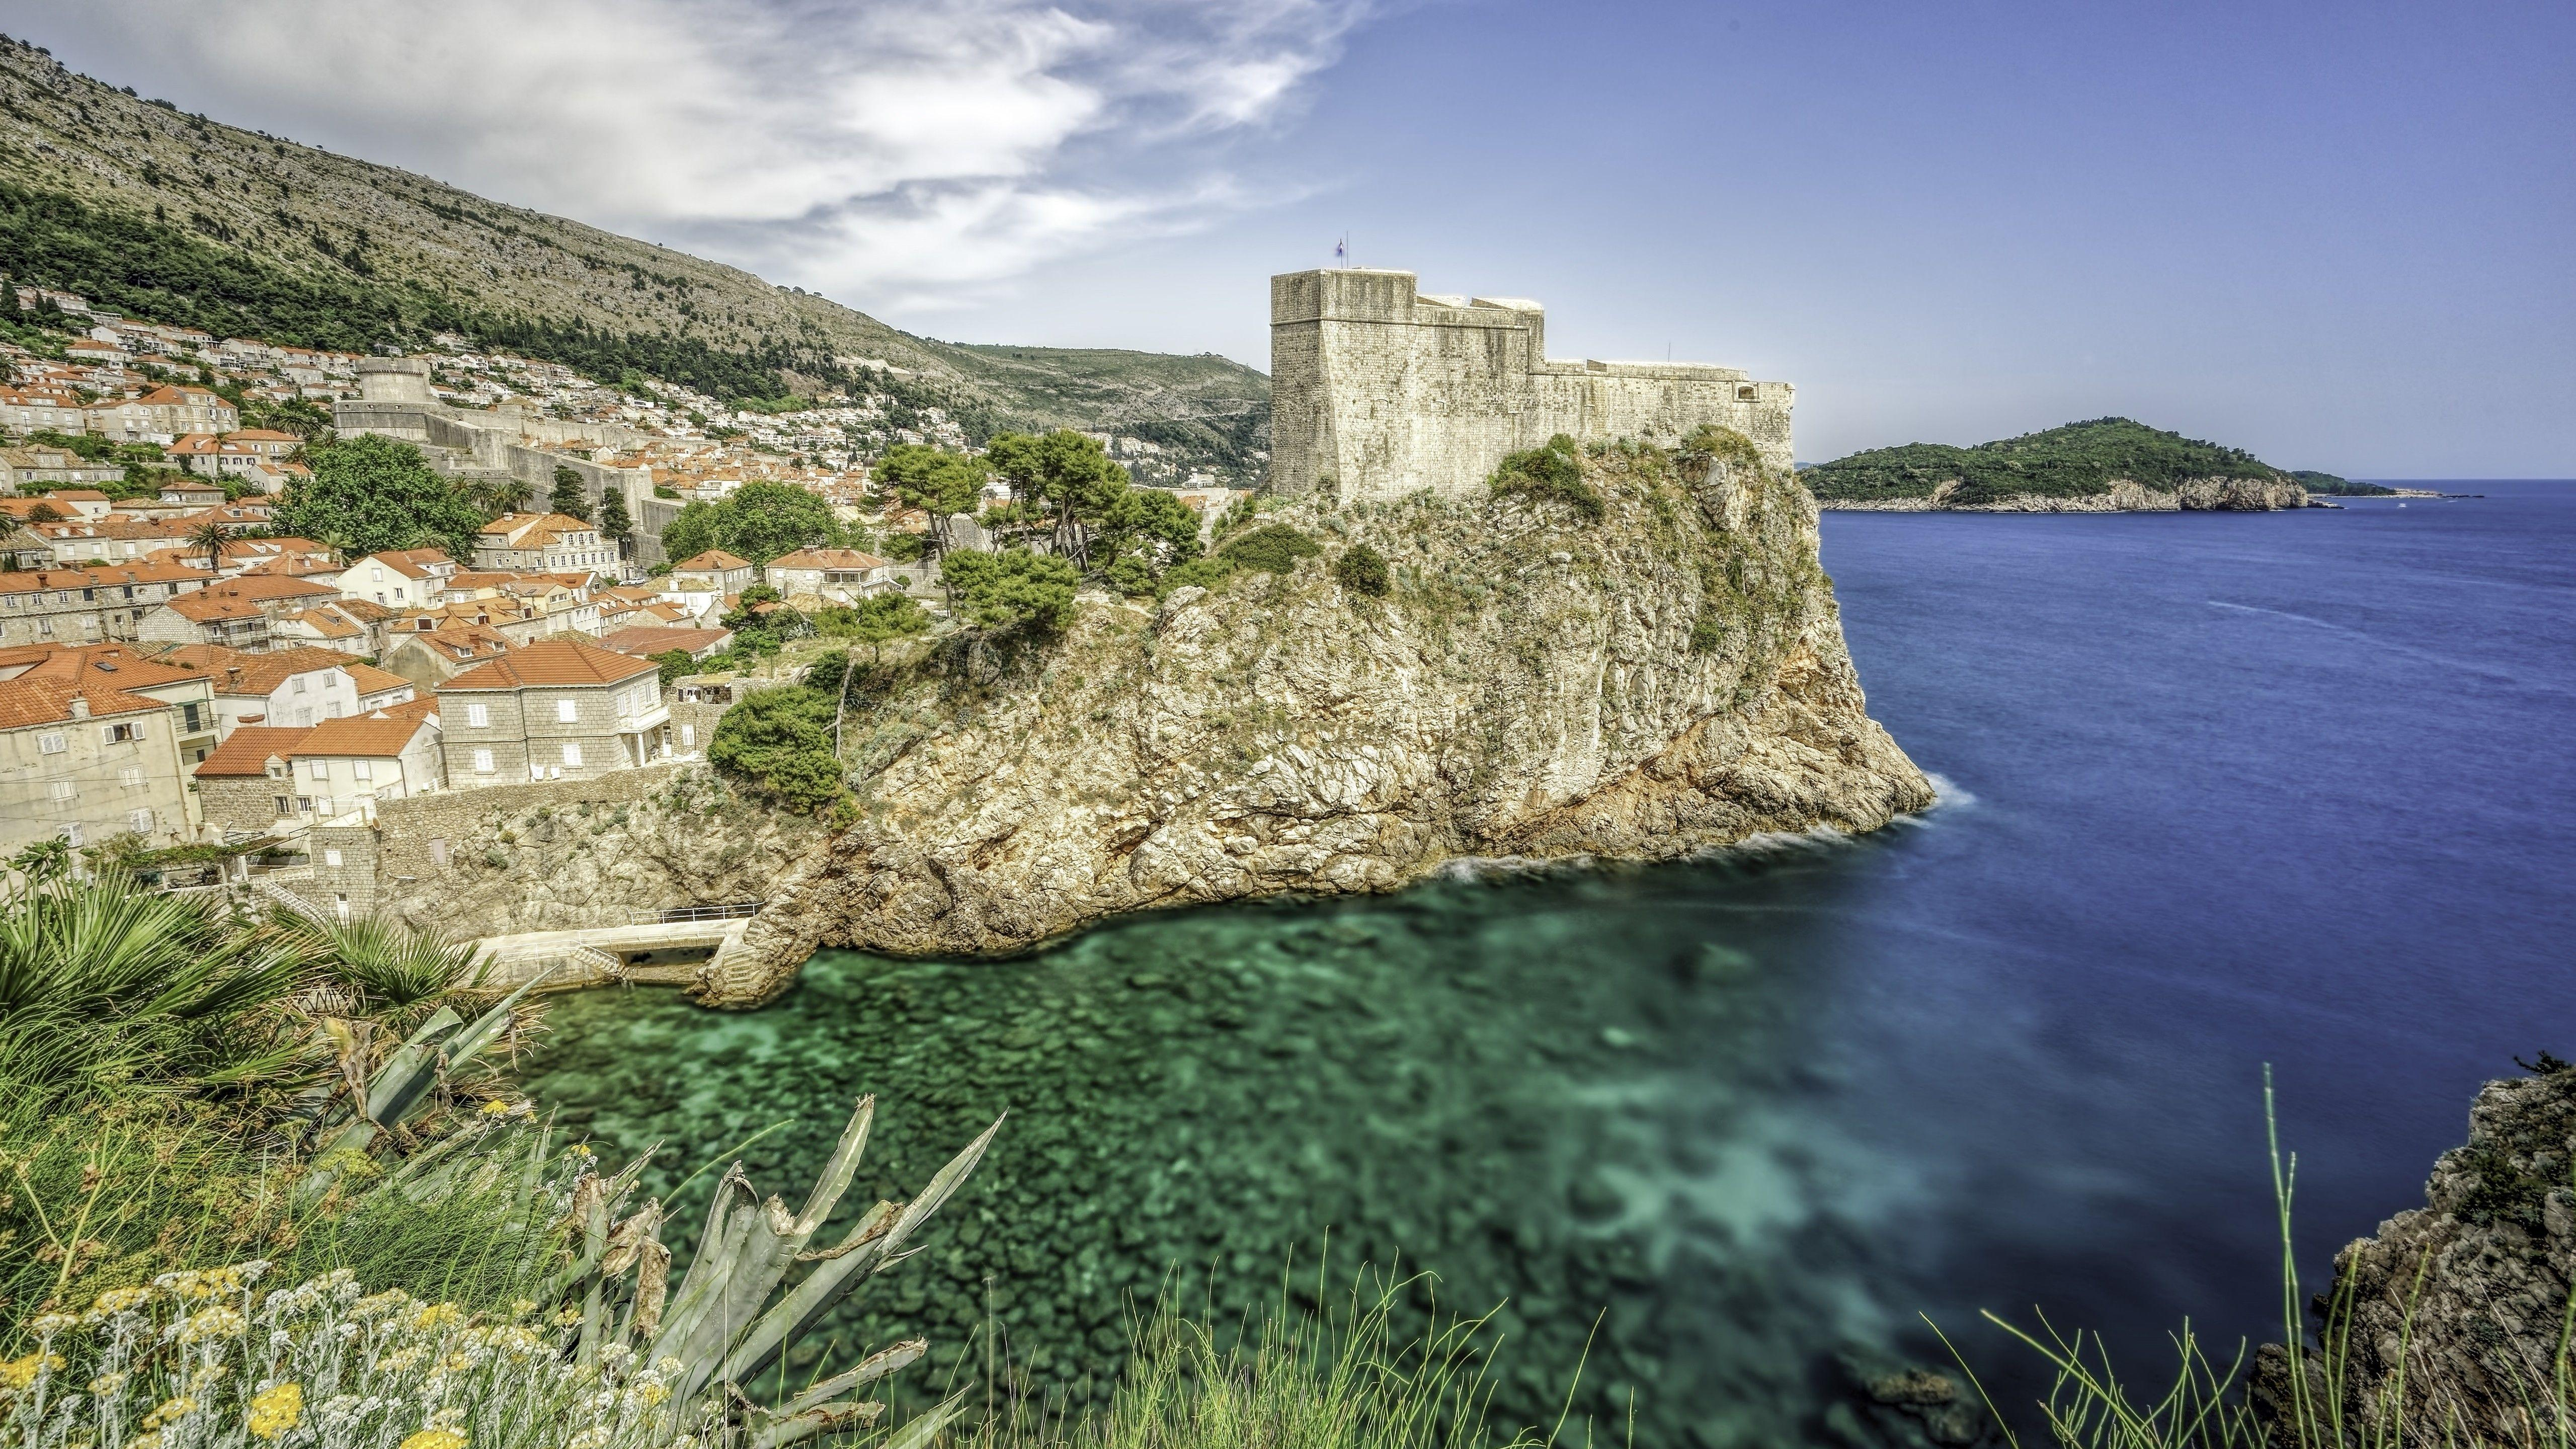 Wallpapers 5120x2880 Awesome fort Lovrijenac Dubrovnik Wallpapers